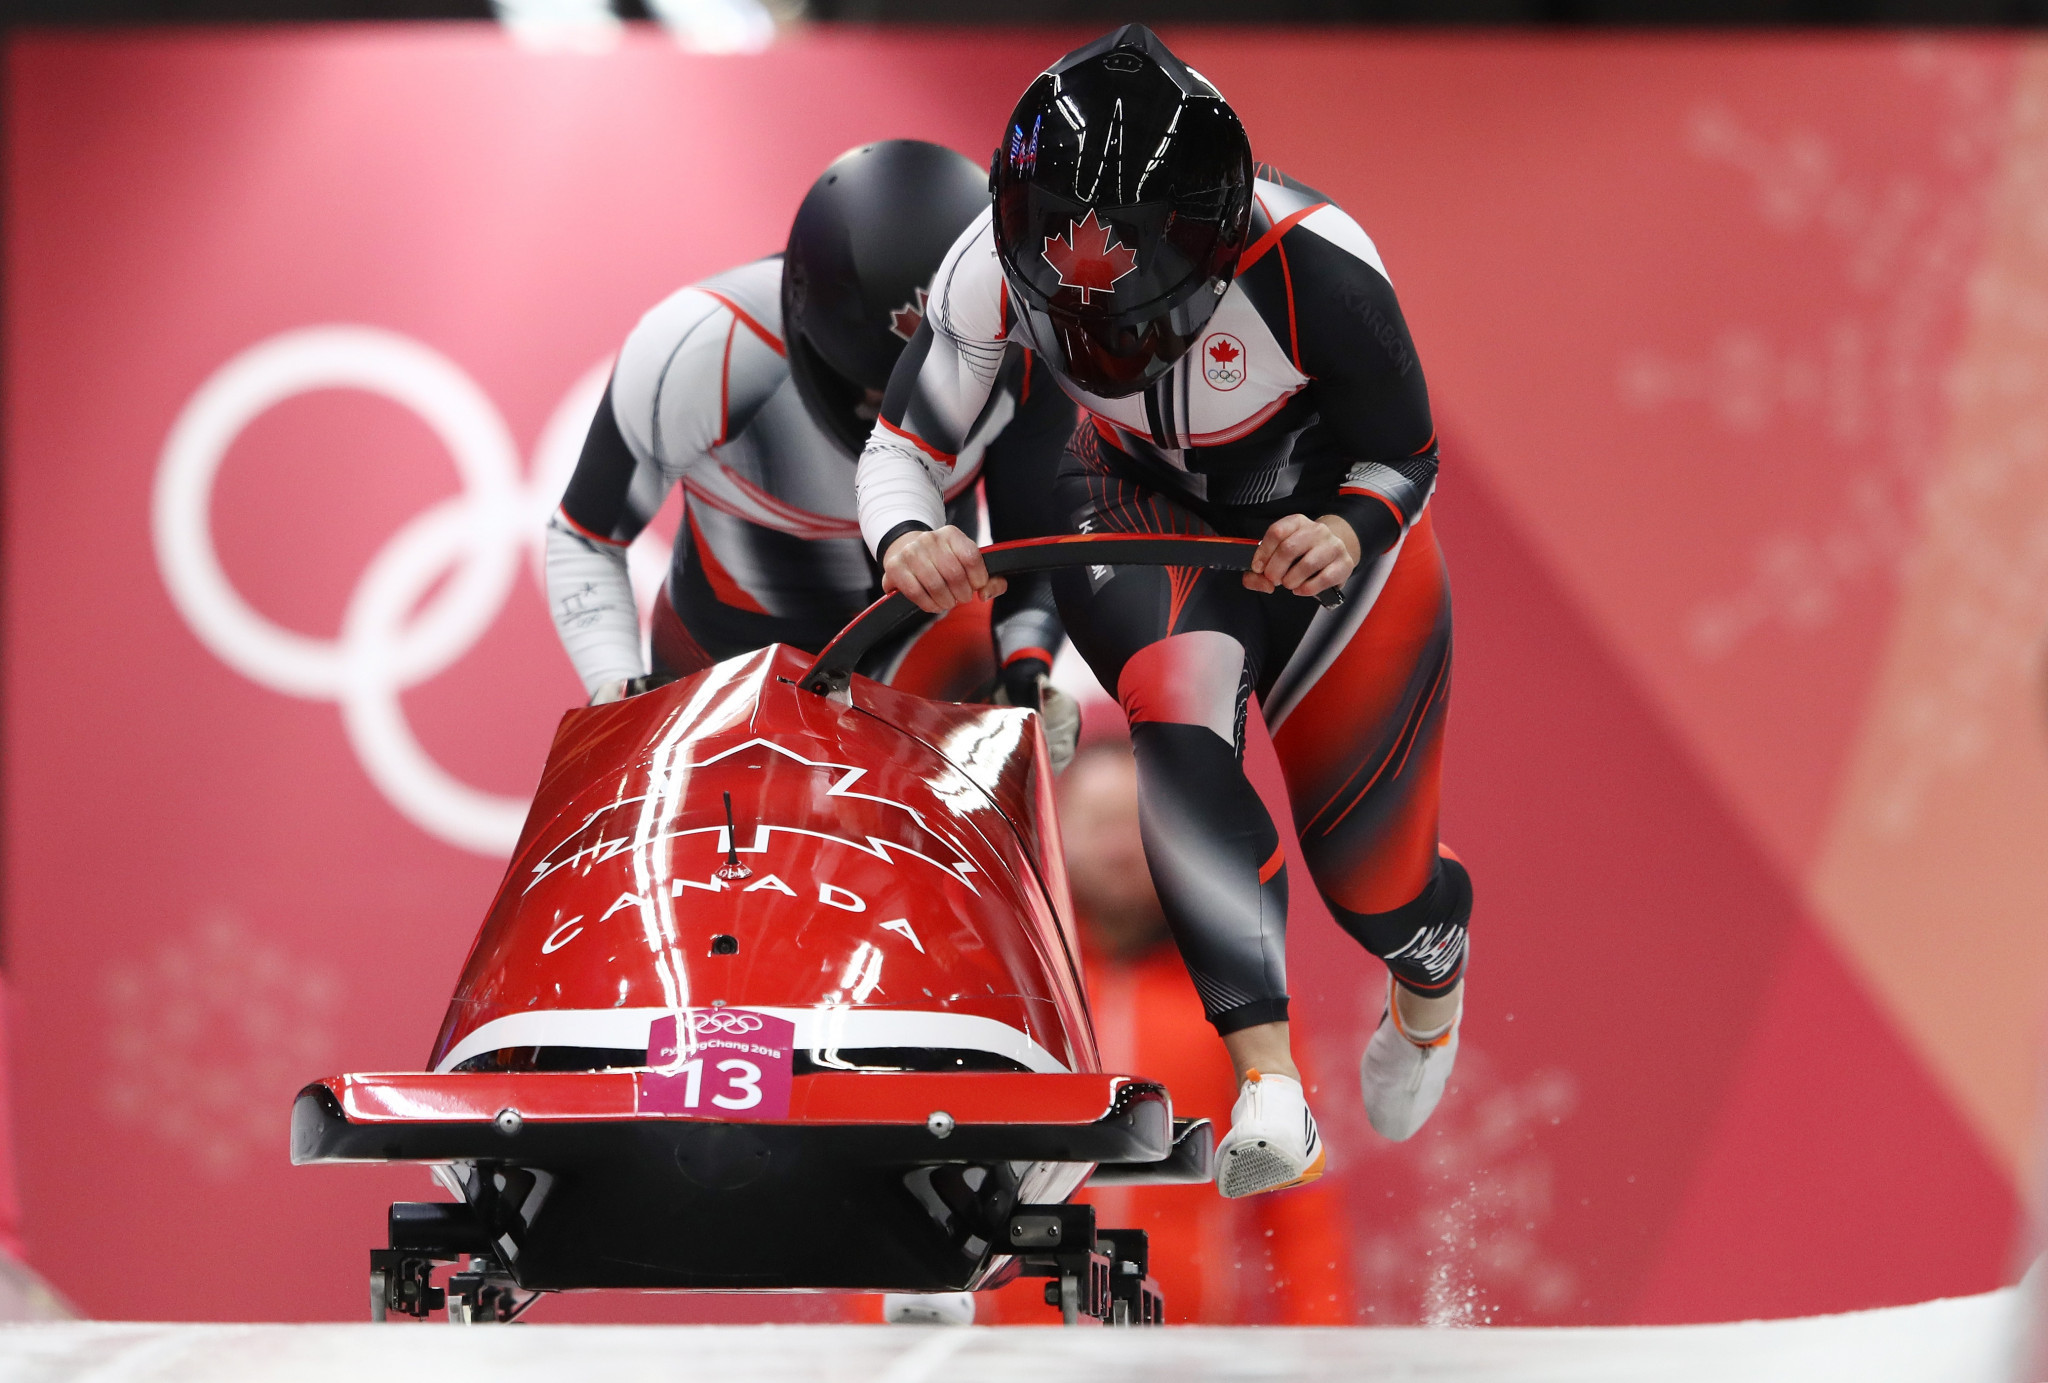 Melissa Lotholz was a brakewoman as part of a partnership with Christine de Bruin at Pyeongchang 2018 ©Getty Images